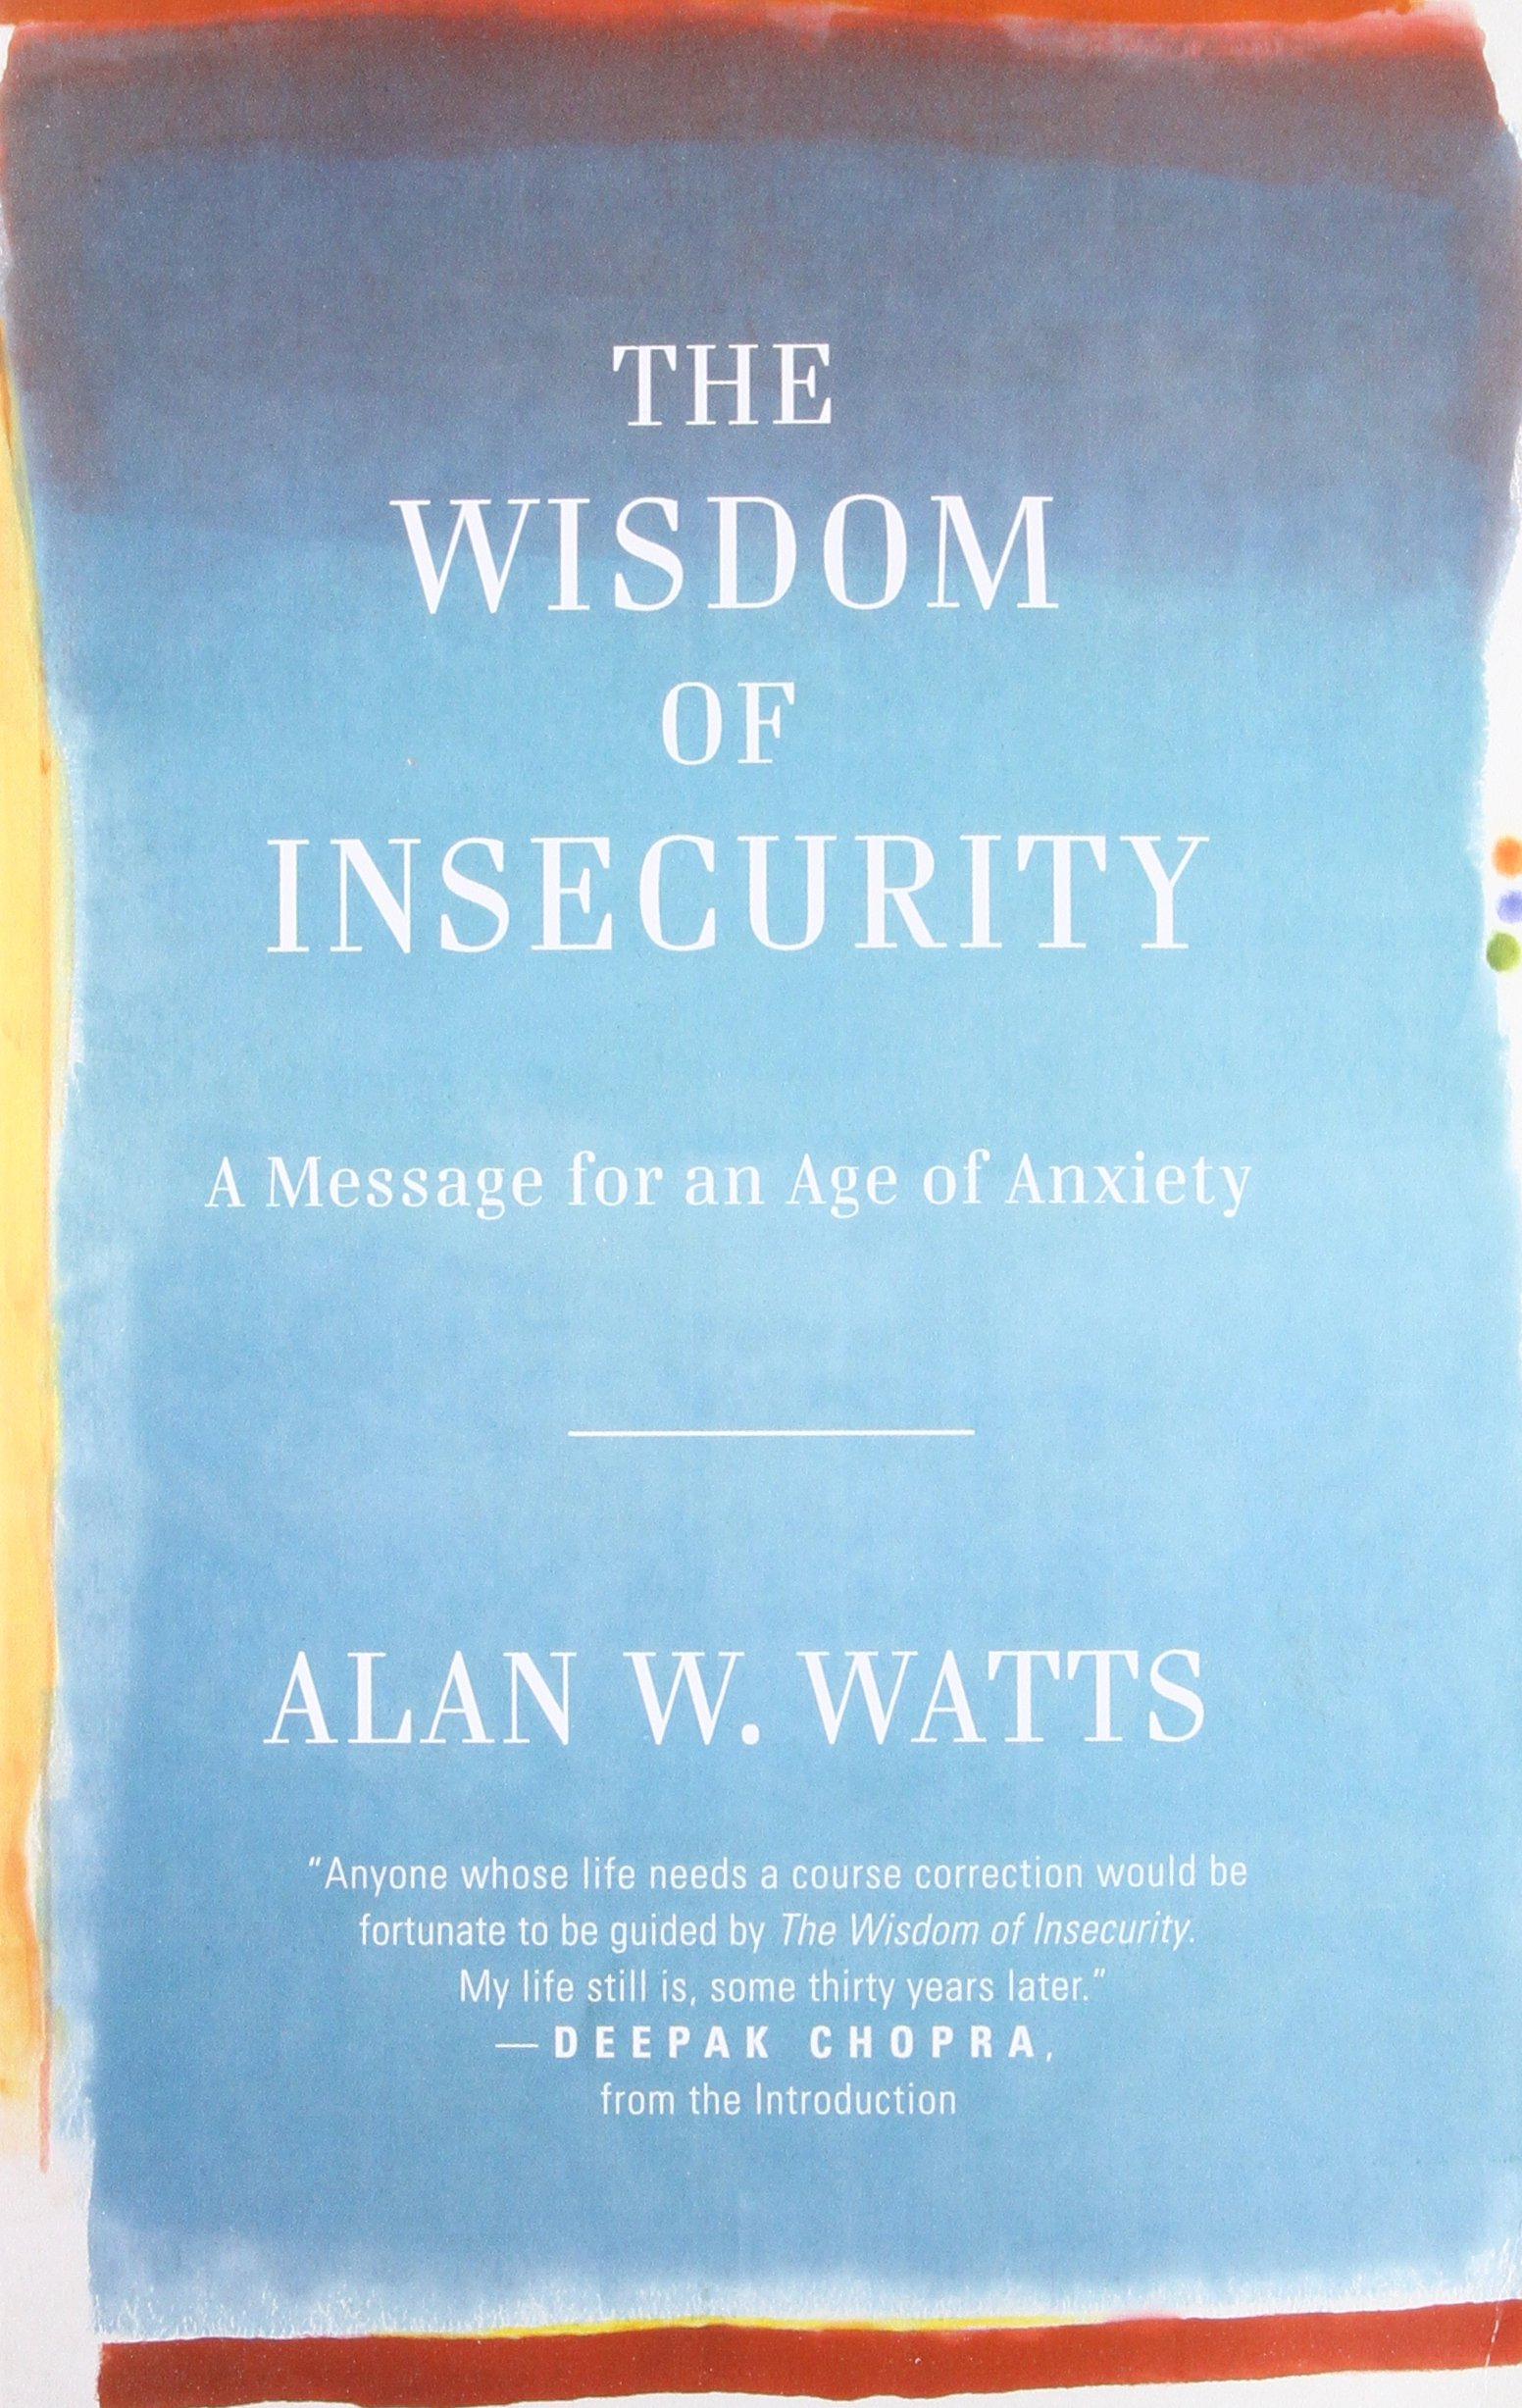 The Wisdom of Insecurity Summary